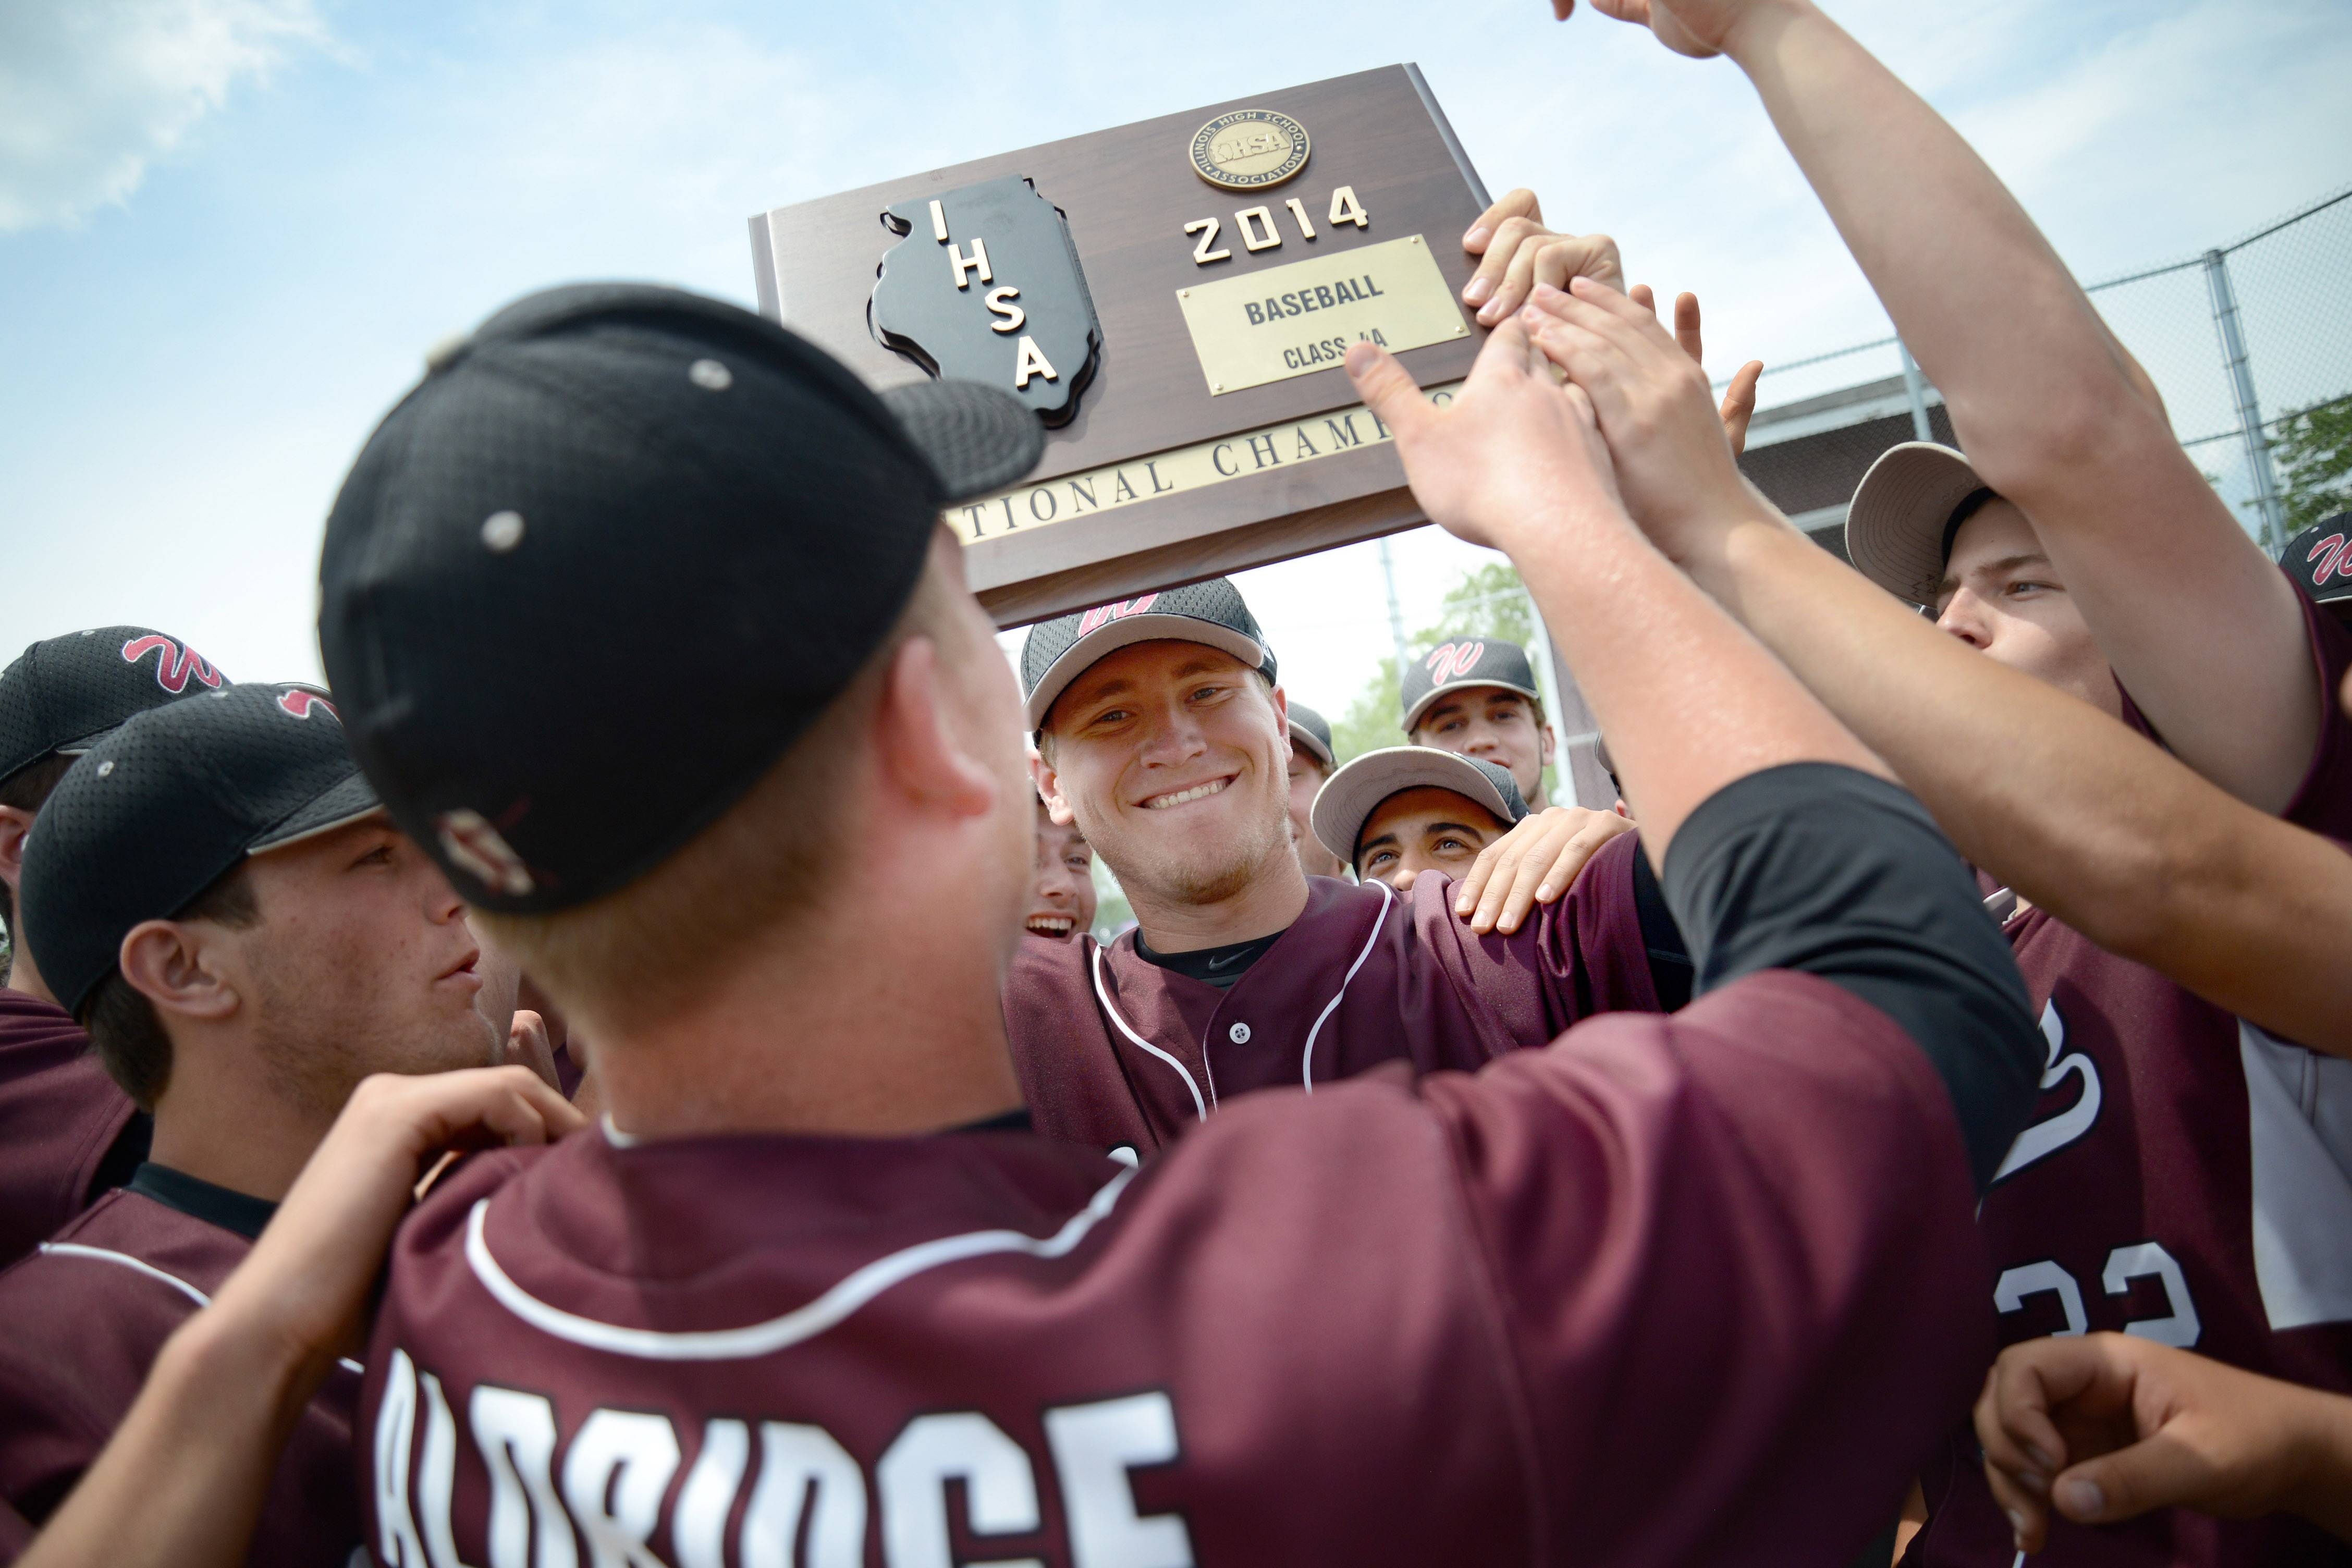 Prairie Ridge's Timothy Jablonsky (facing) and Caleb Aldridge (back to camera) hoist their Class 4A McHenry sectional championship plaque after defeating Jacobs at Peterson Park on Saturday.